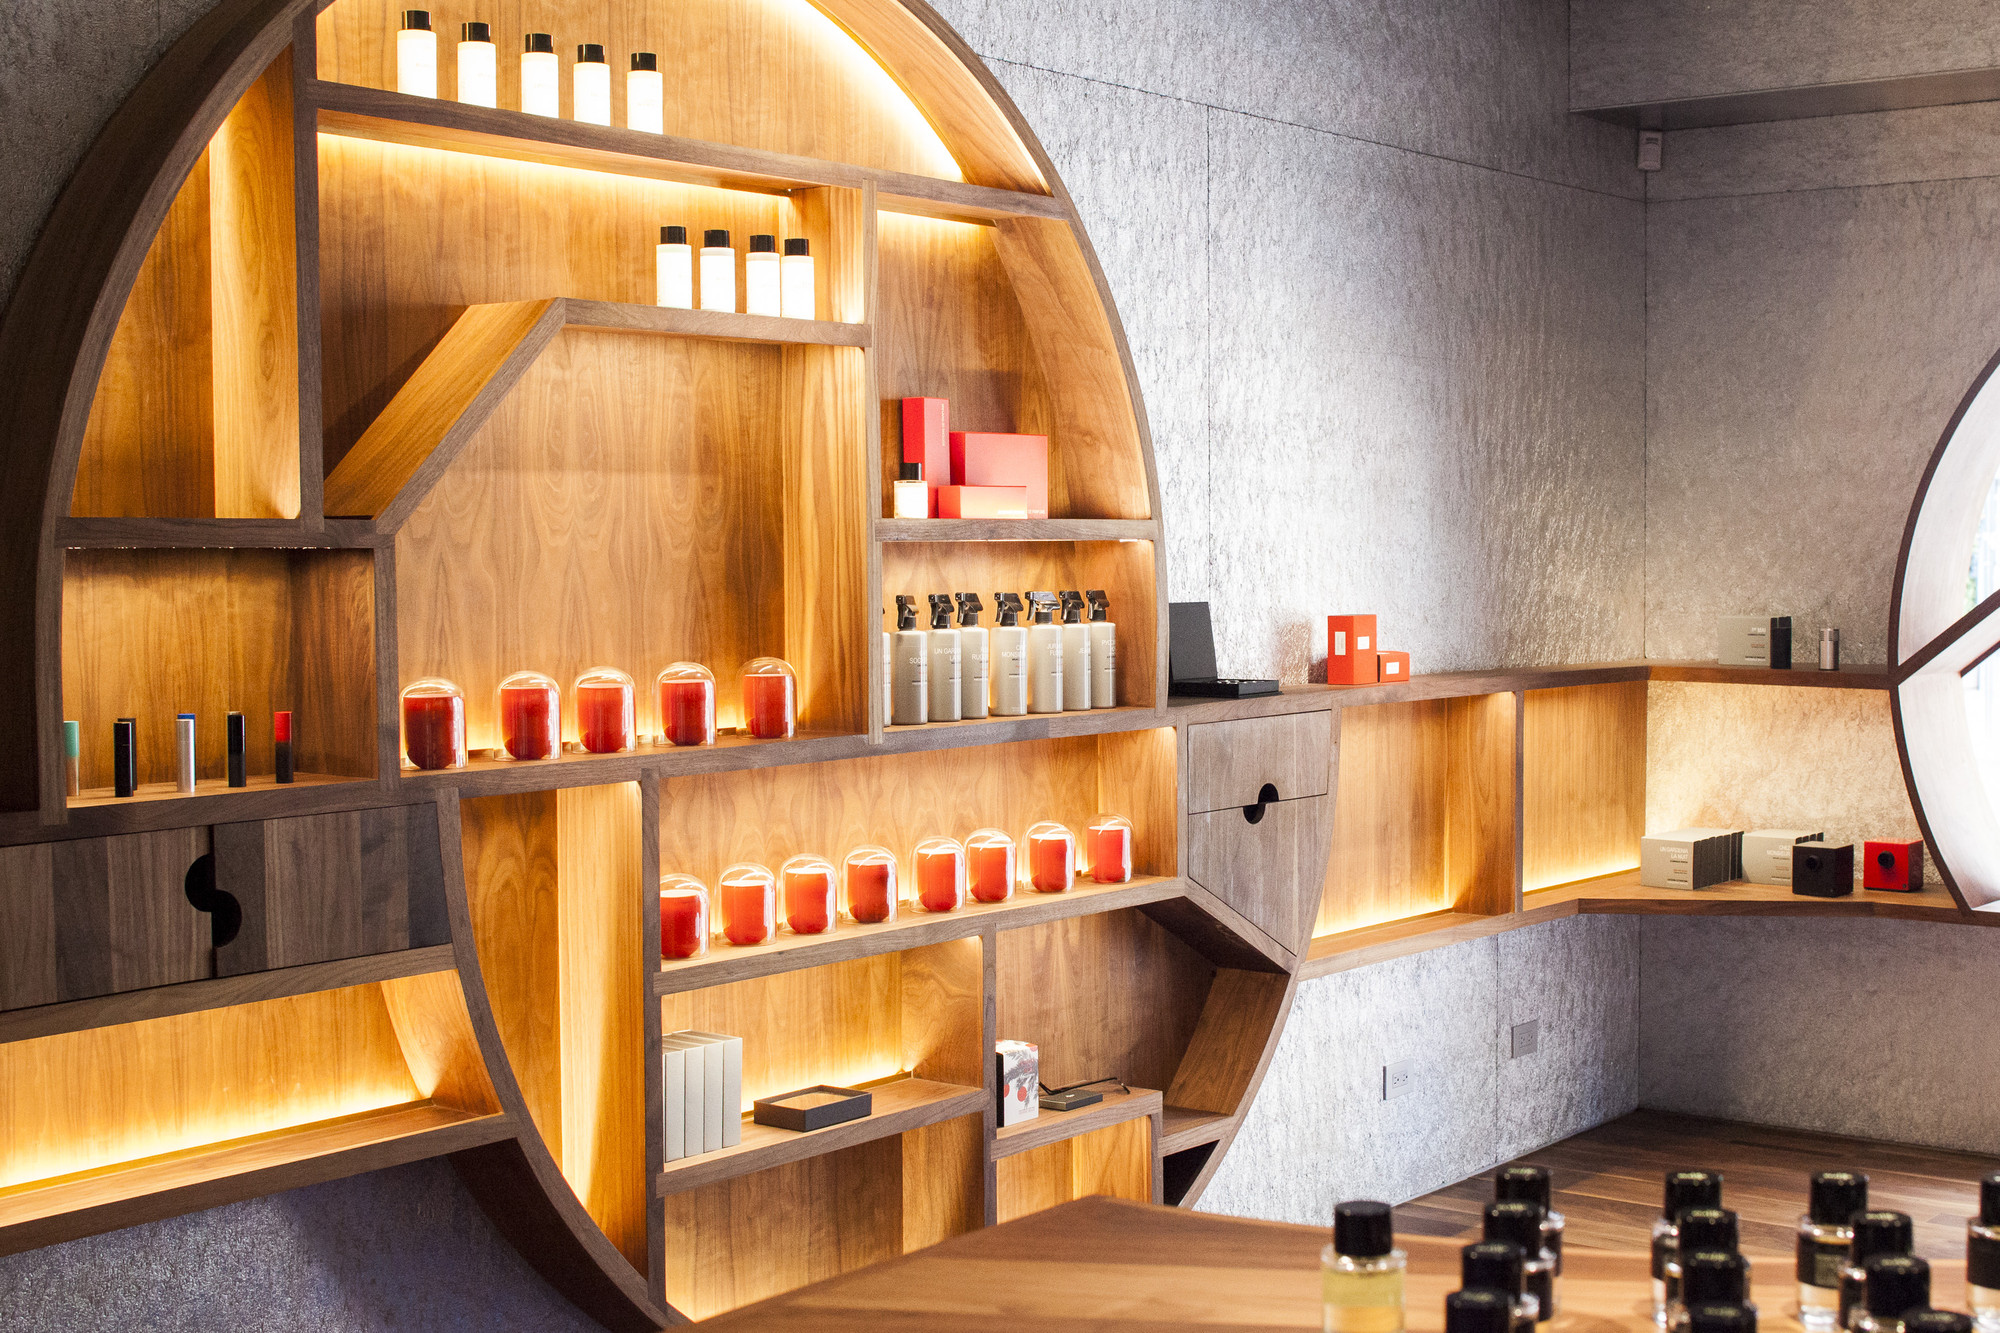 Frederic Malle / Steven Holl Architects, © Susan Wides